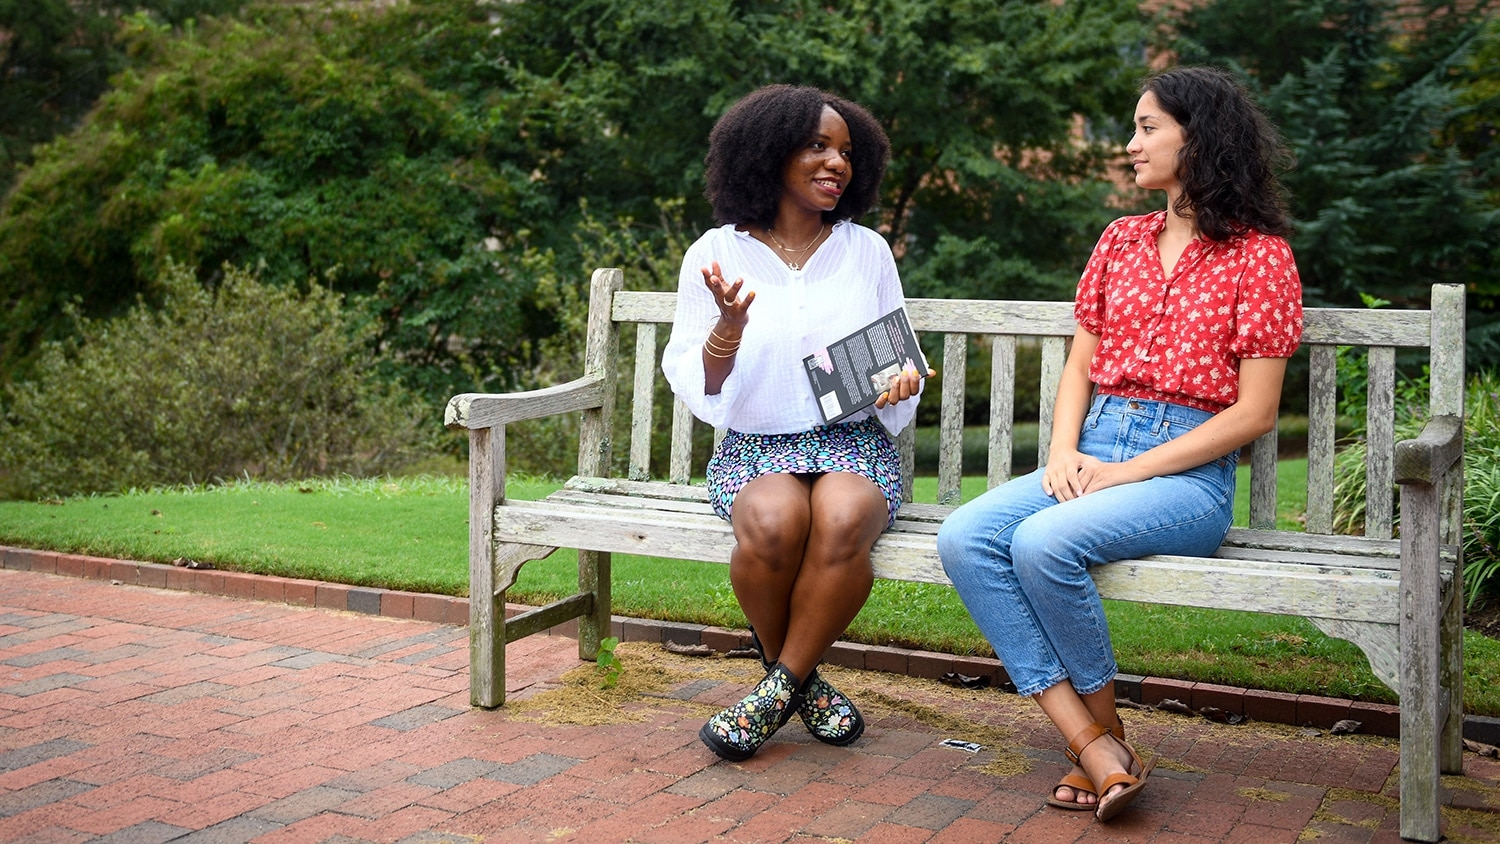 Rafeeat Aliyu and Meghan Tanaka sit beside each other on a bench on campus and discuss creative writing.